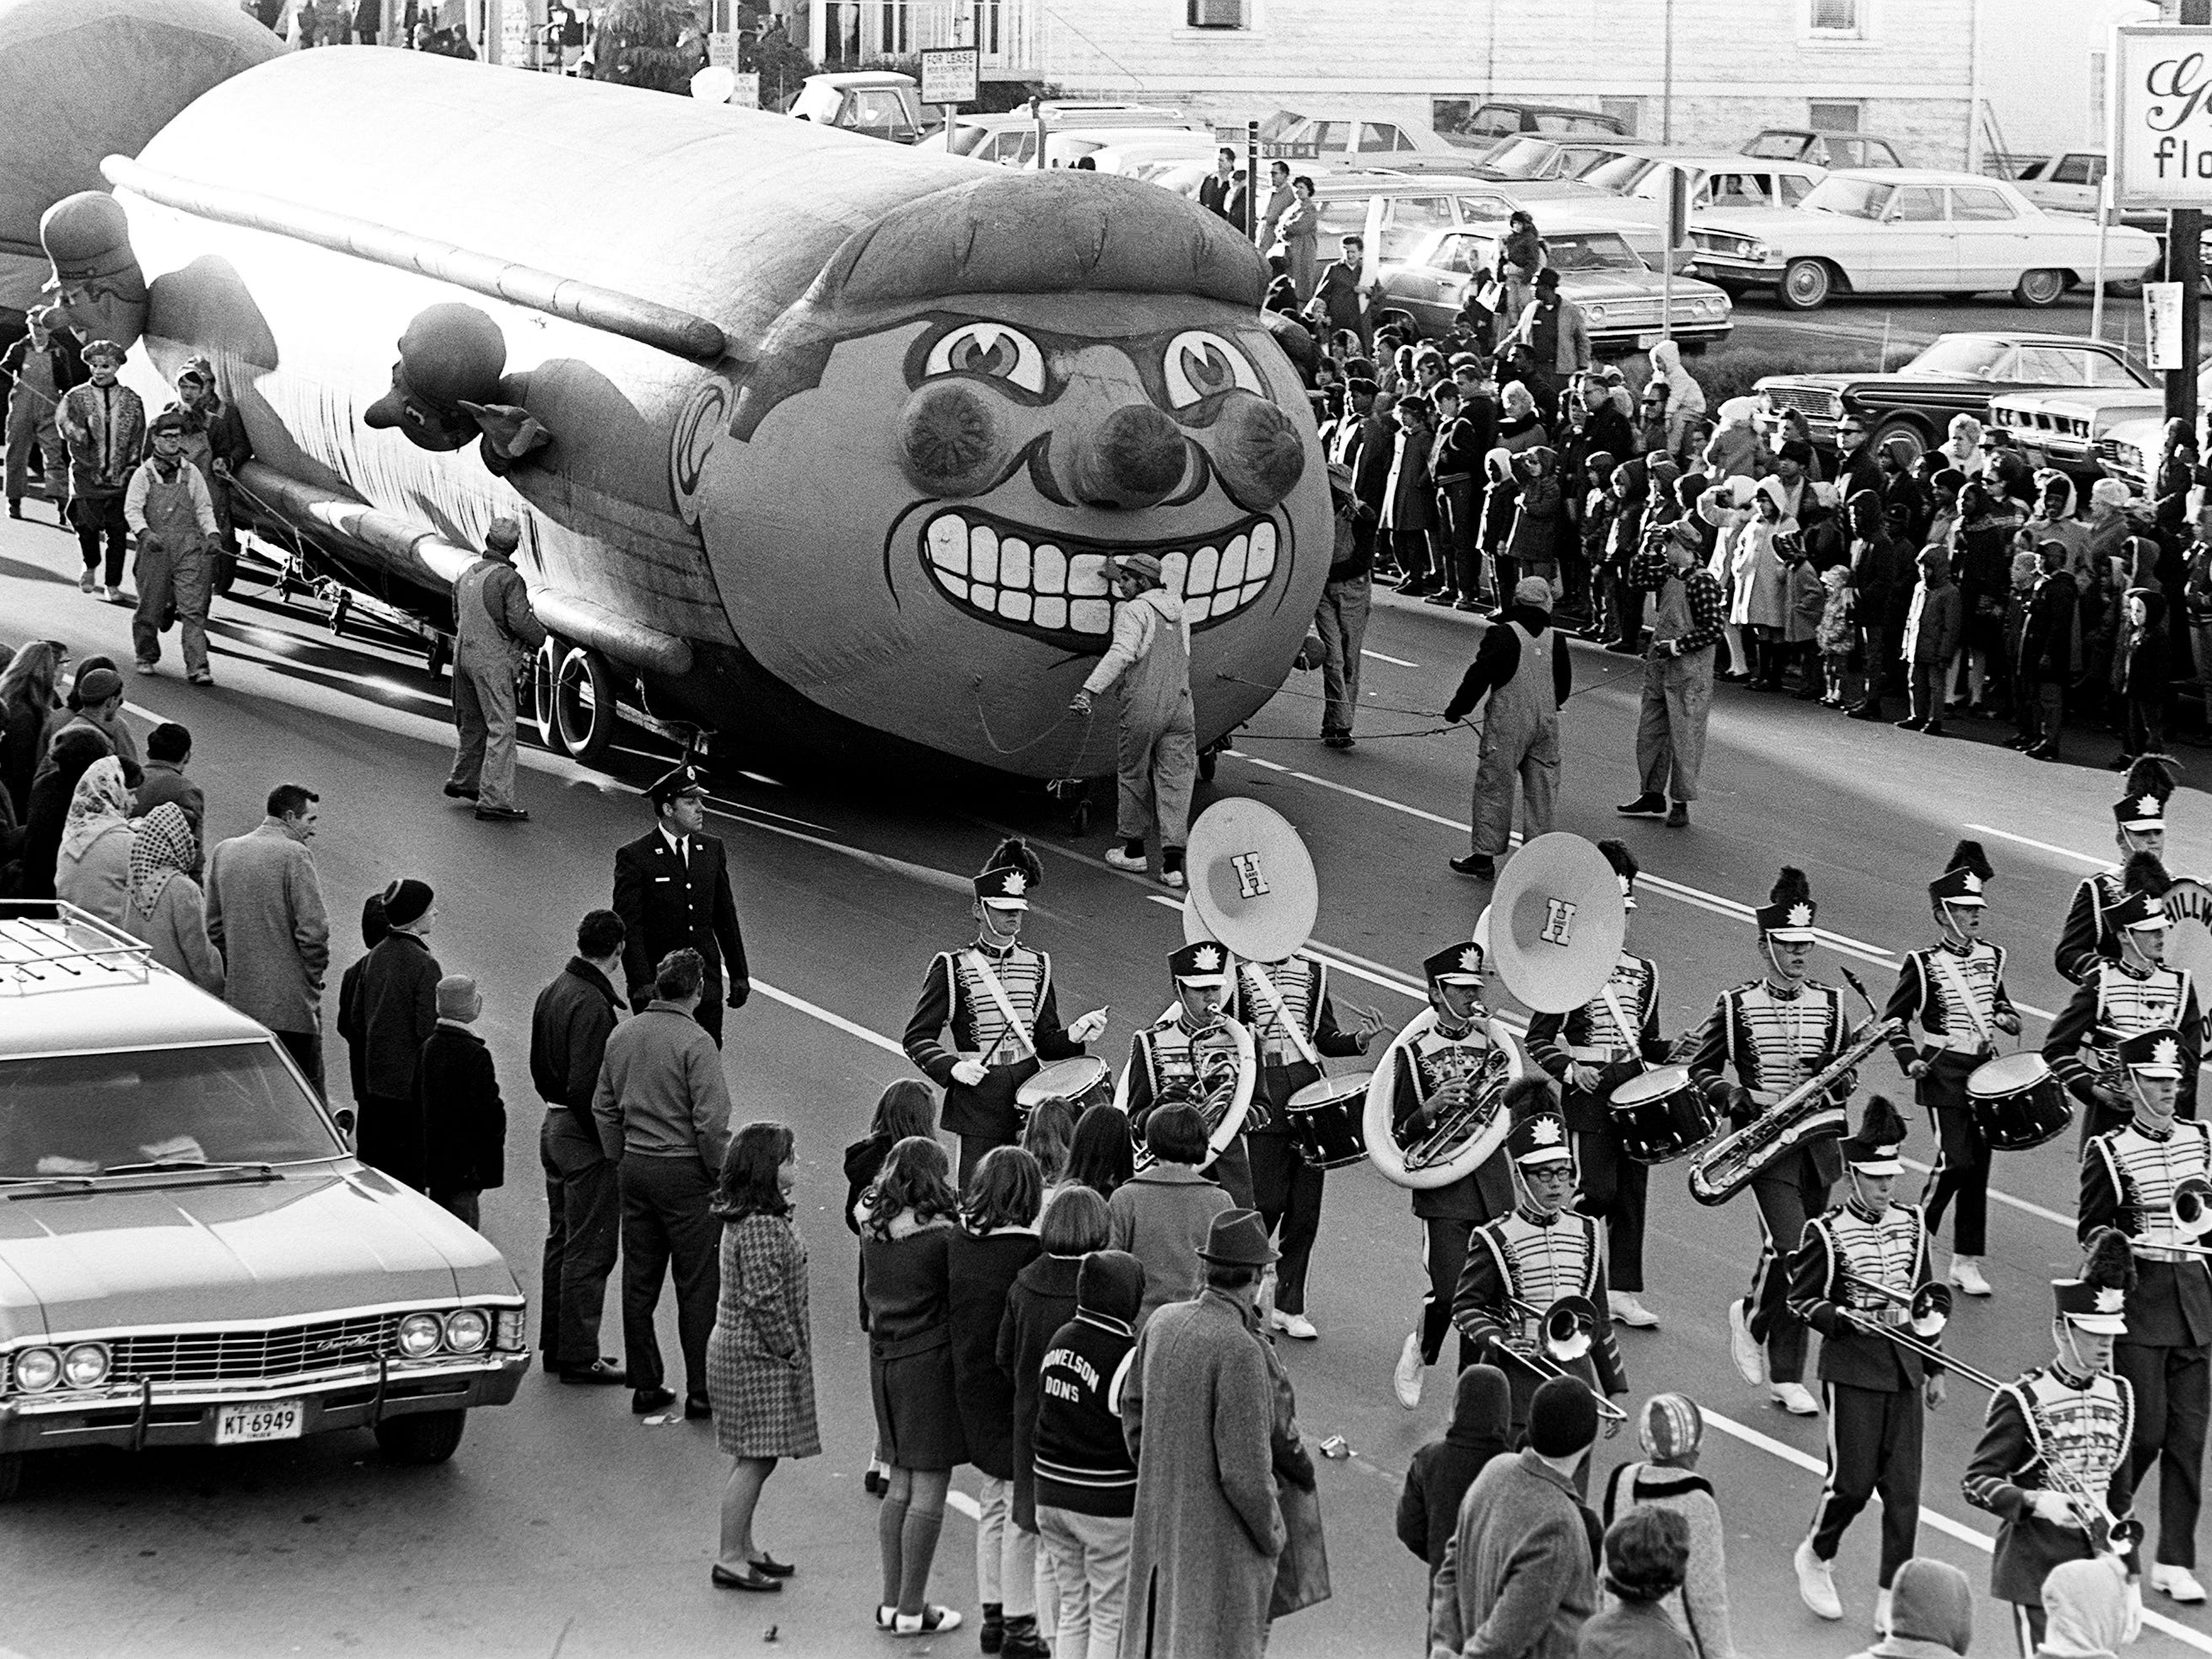 A grinning giant locomotive and the Hillwood High School marching band delight the estimated crowd of 125,000 during the 16th annual Nashville Christmas Parade on Dec. 8, 1968.